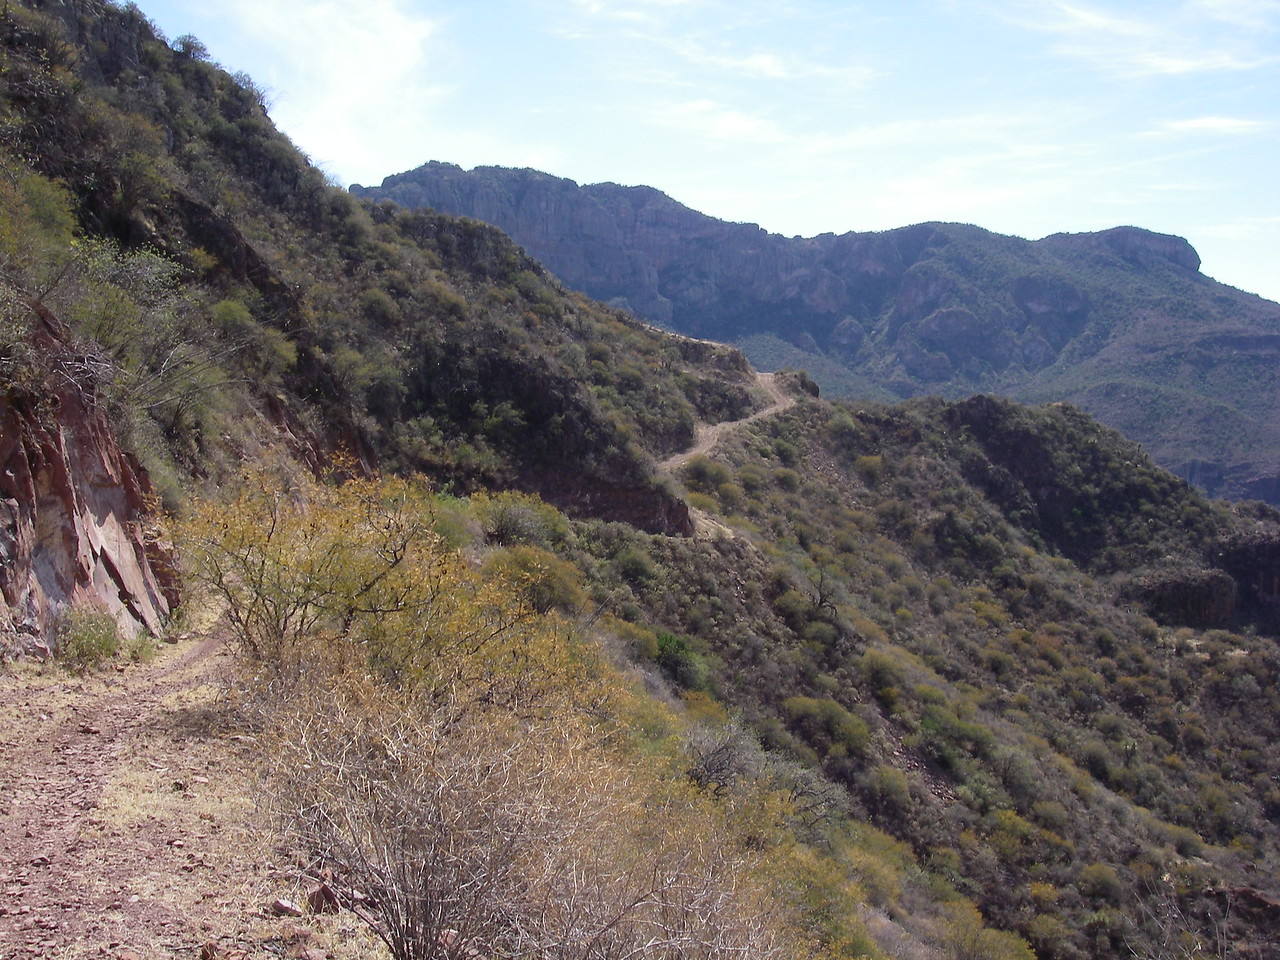 OK let's head down into the San Pedro canyon, the goats must love this route.